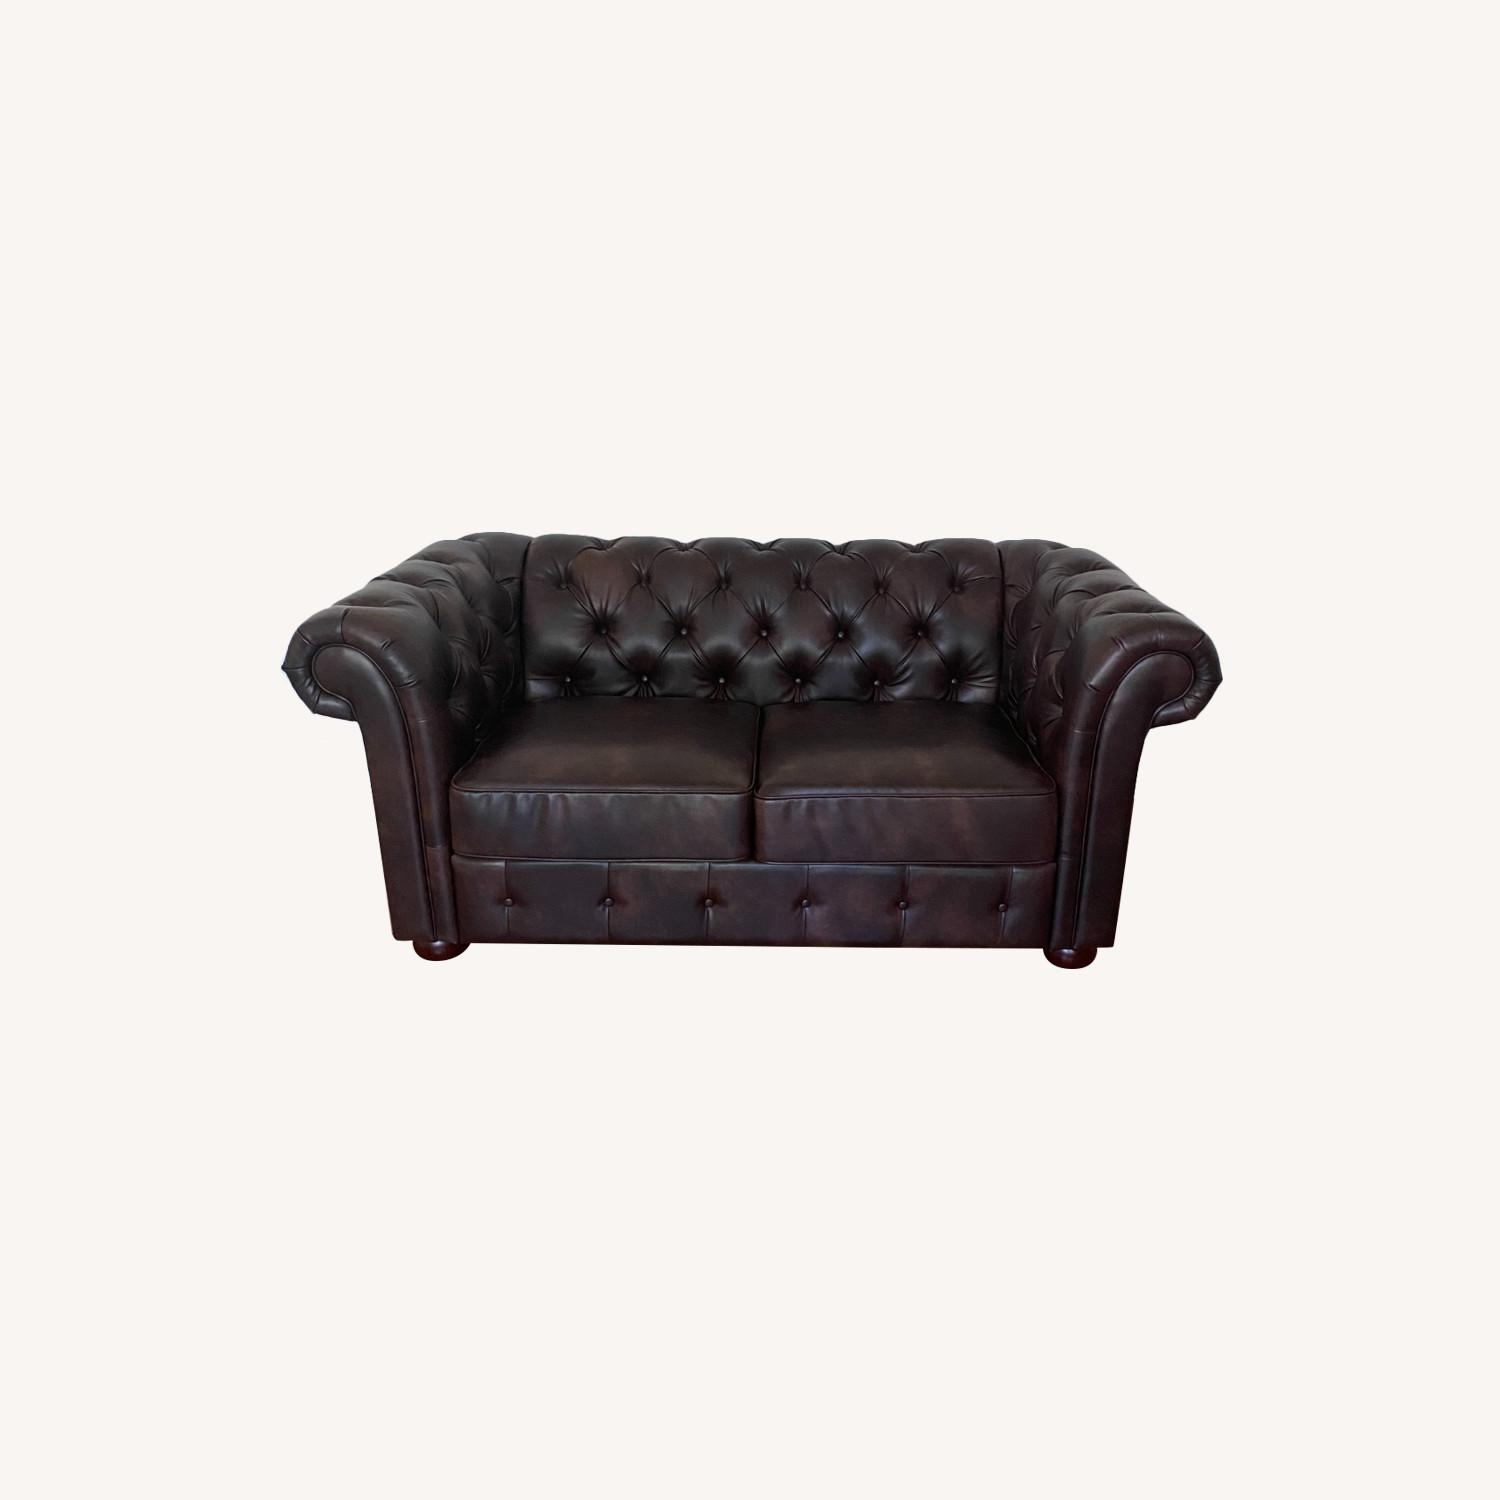 Wayfair Faux Leather Rolled Arm Loveseat - image-0